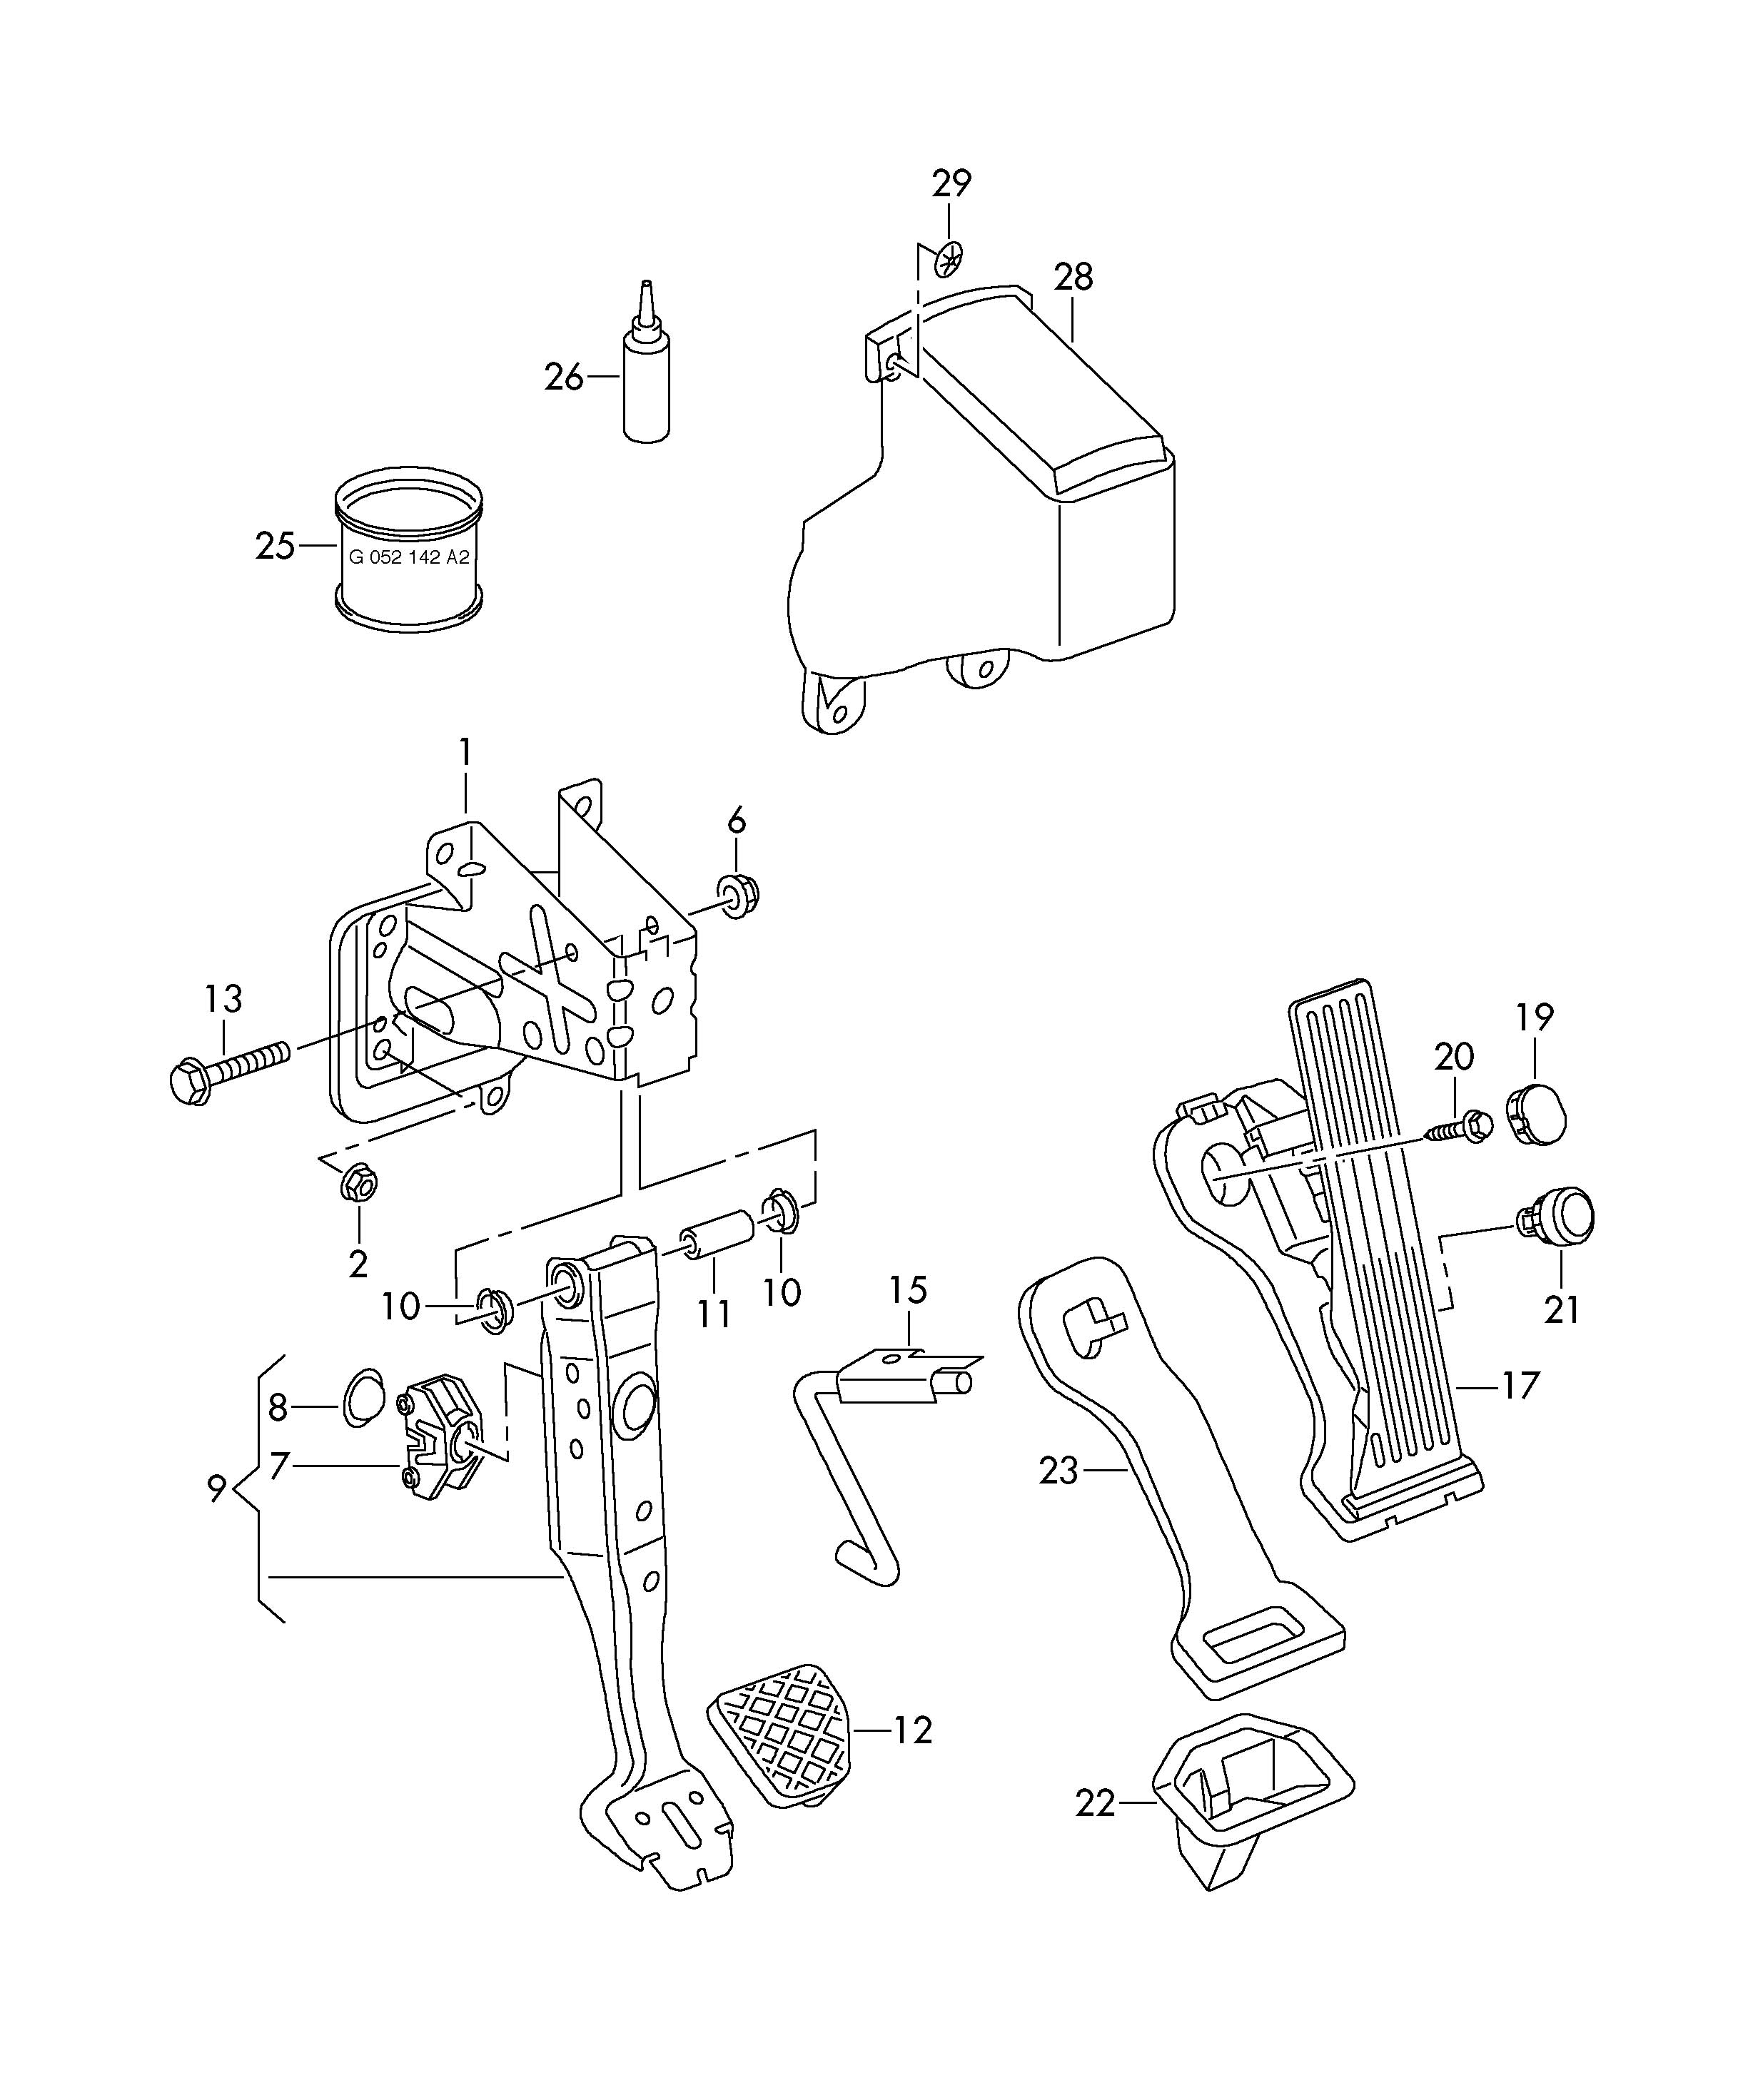 ... Land Rover Front Suspension Diagrams in addition Vw Golf Mk6 Fuse Box  Chart in addition Nissan ...